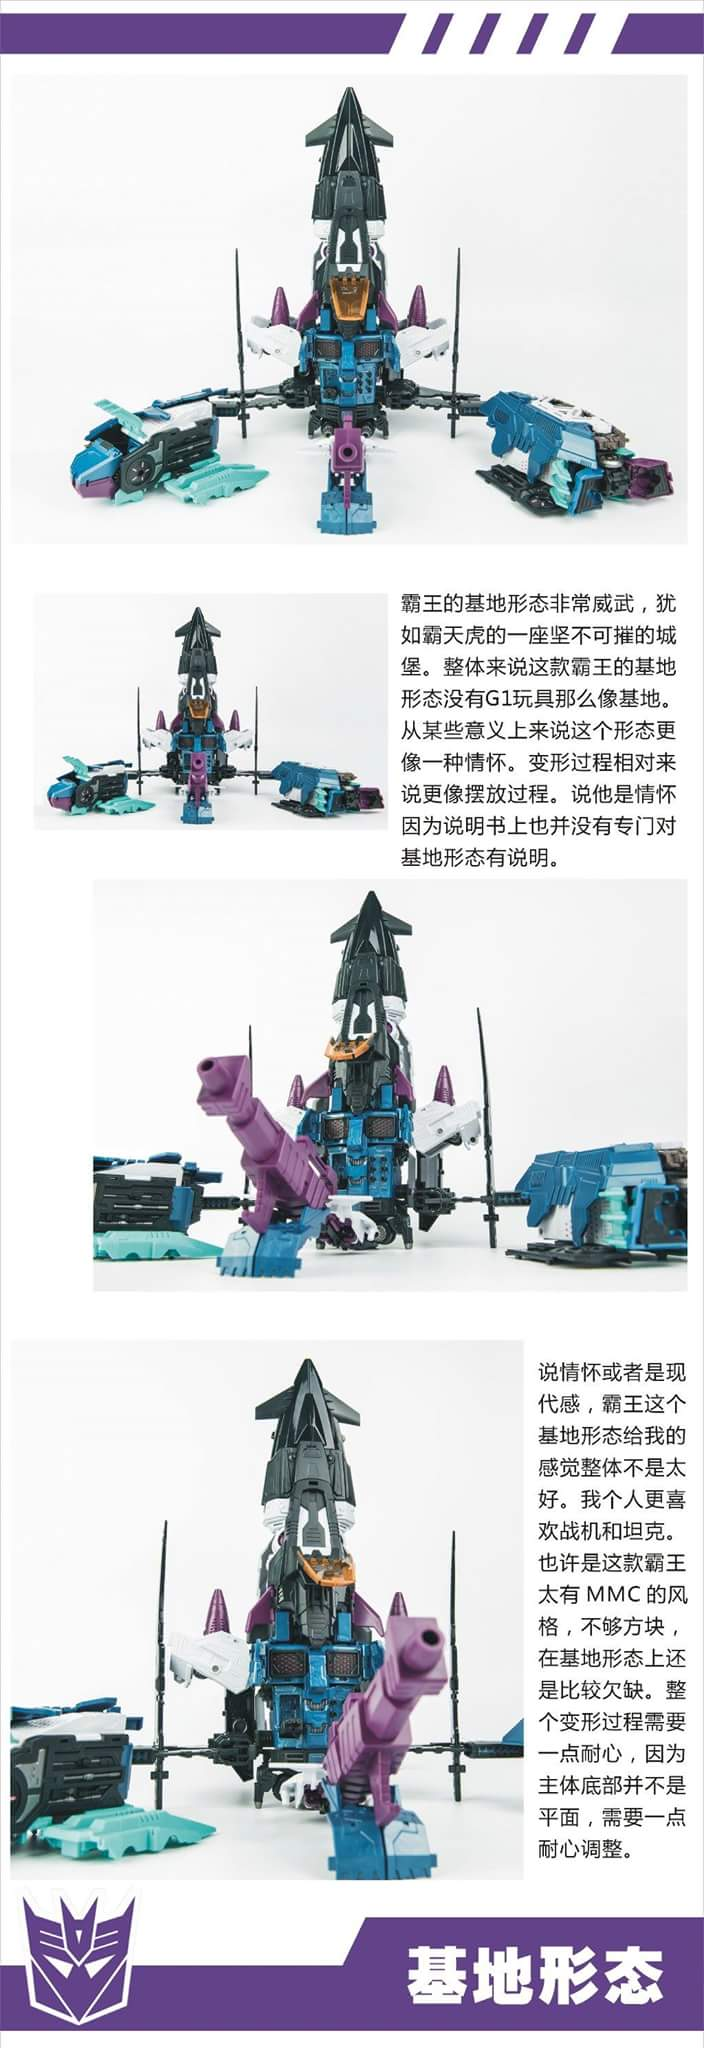 [Mastermind Creations] Produit Tiers - R-17 Carnifex - aka Overlord (TF Masterforce) - Page 3 1LTi5UsP